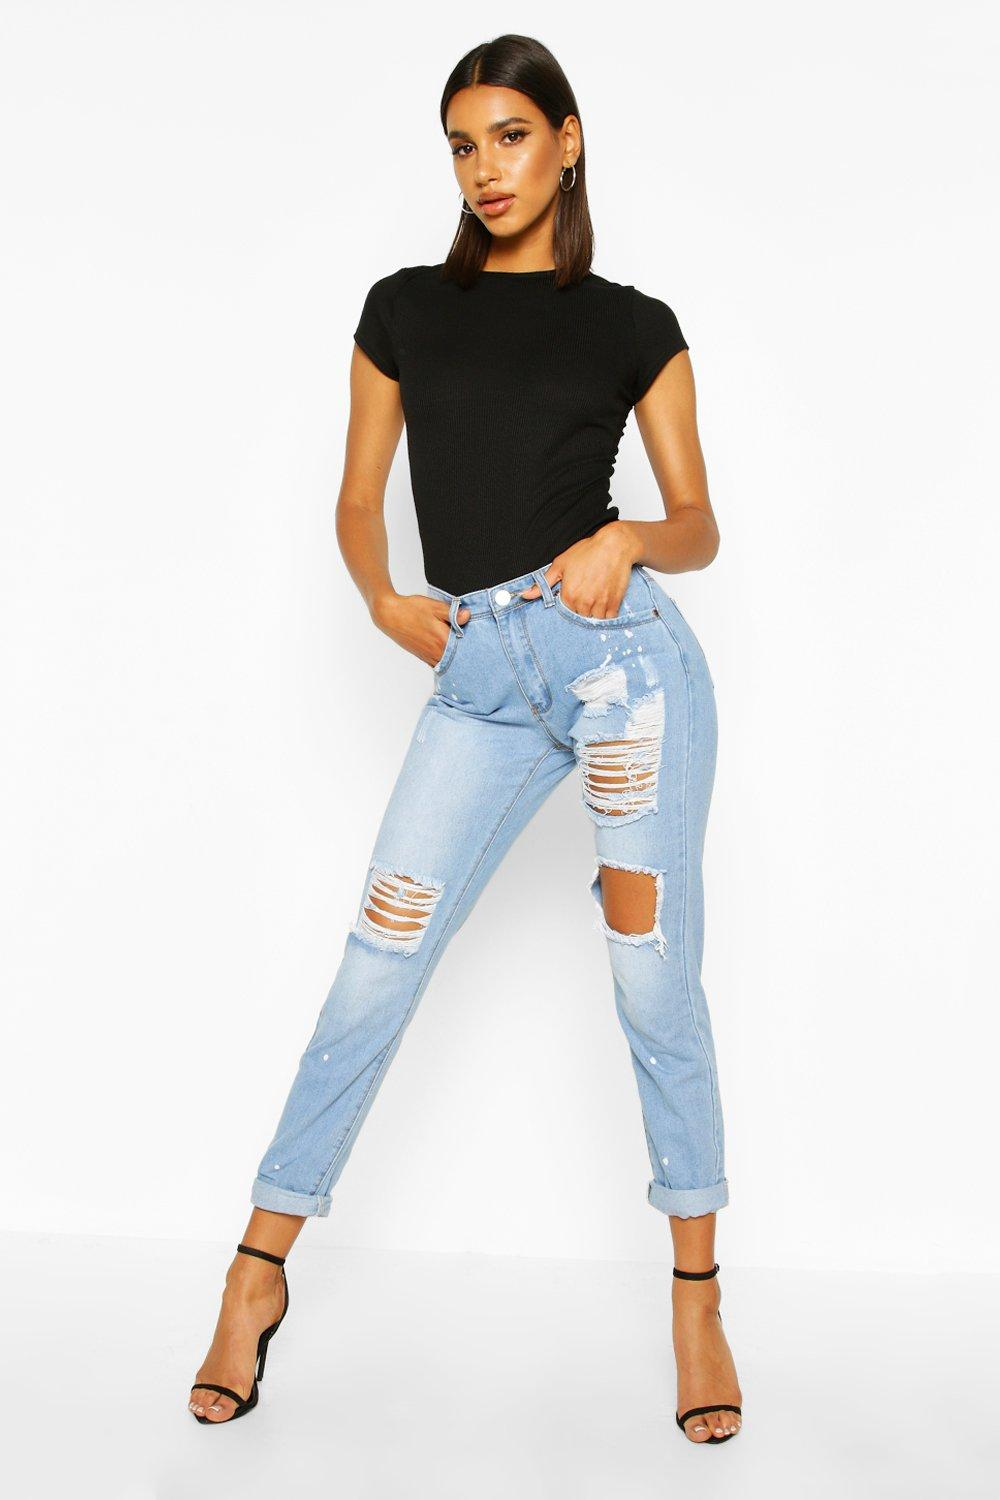 This is how to wear boyfriend jeans the right way!